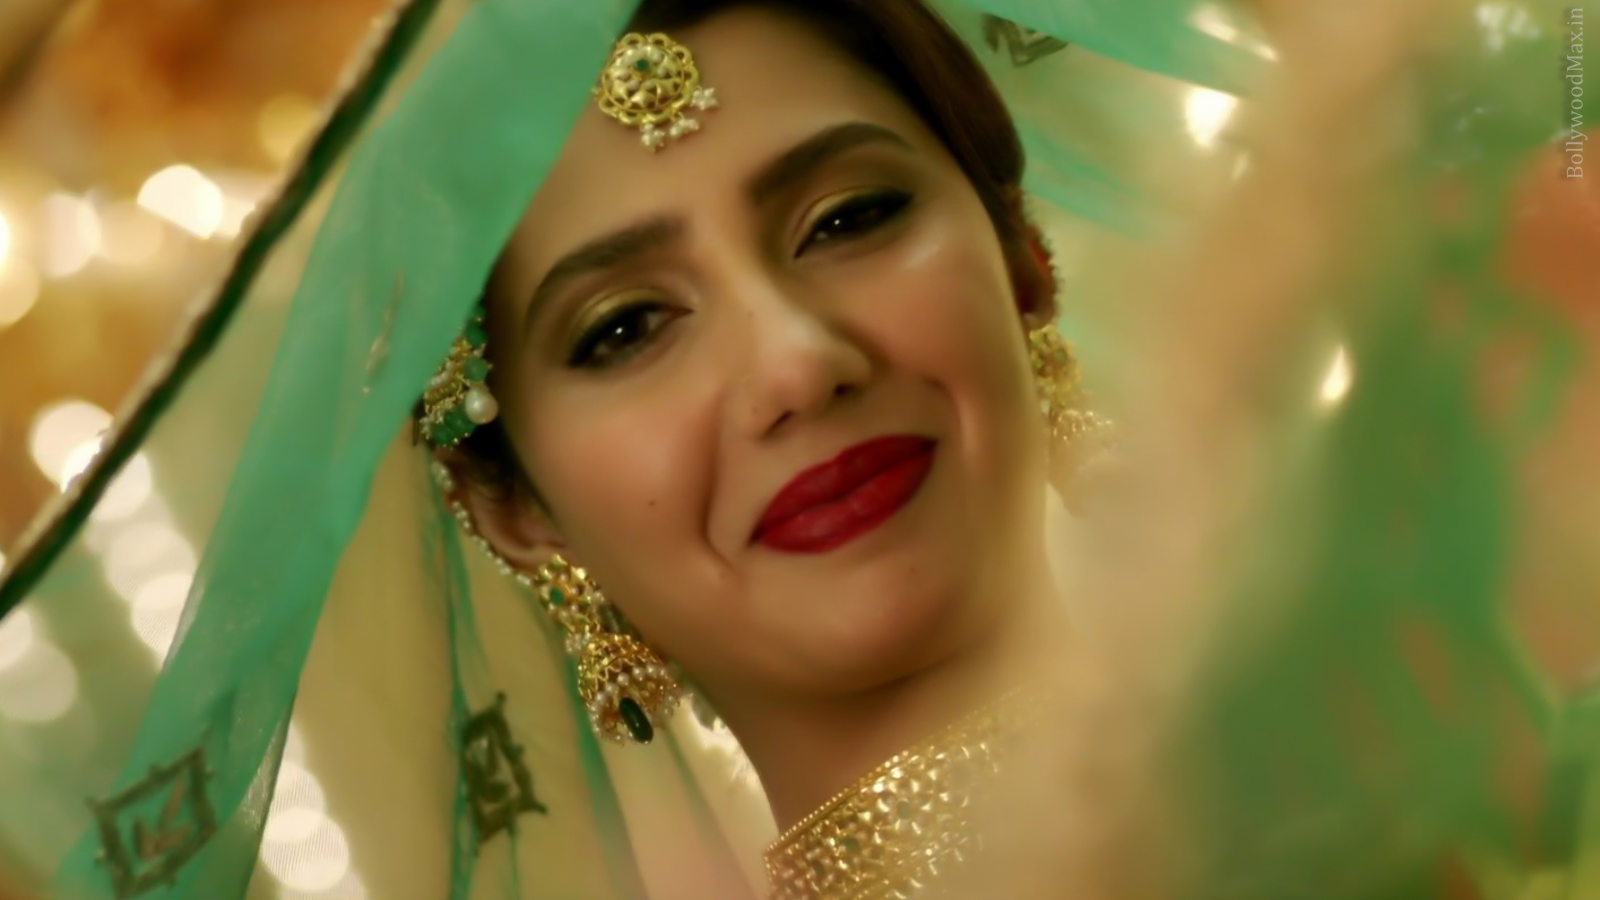 Mahira Khan - Raees - Hot Pakistani Actress Picture And Images-9507